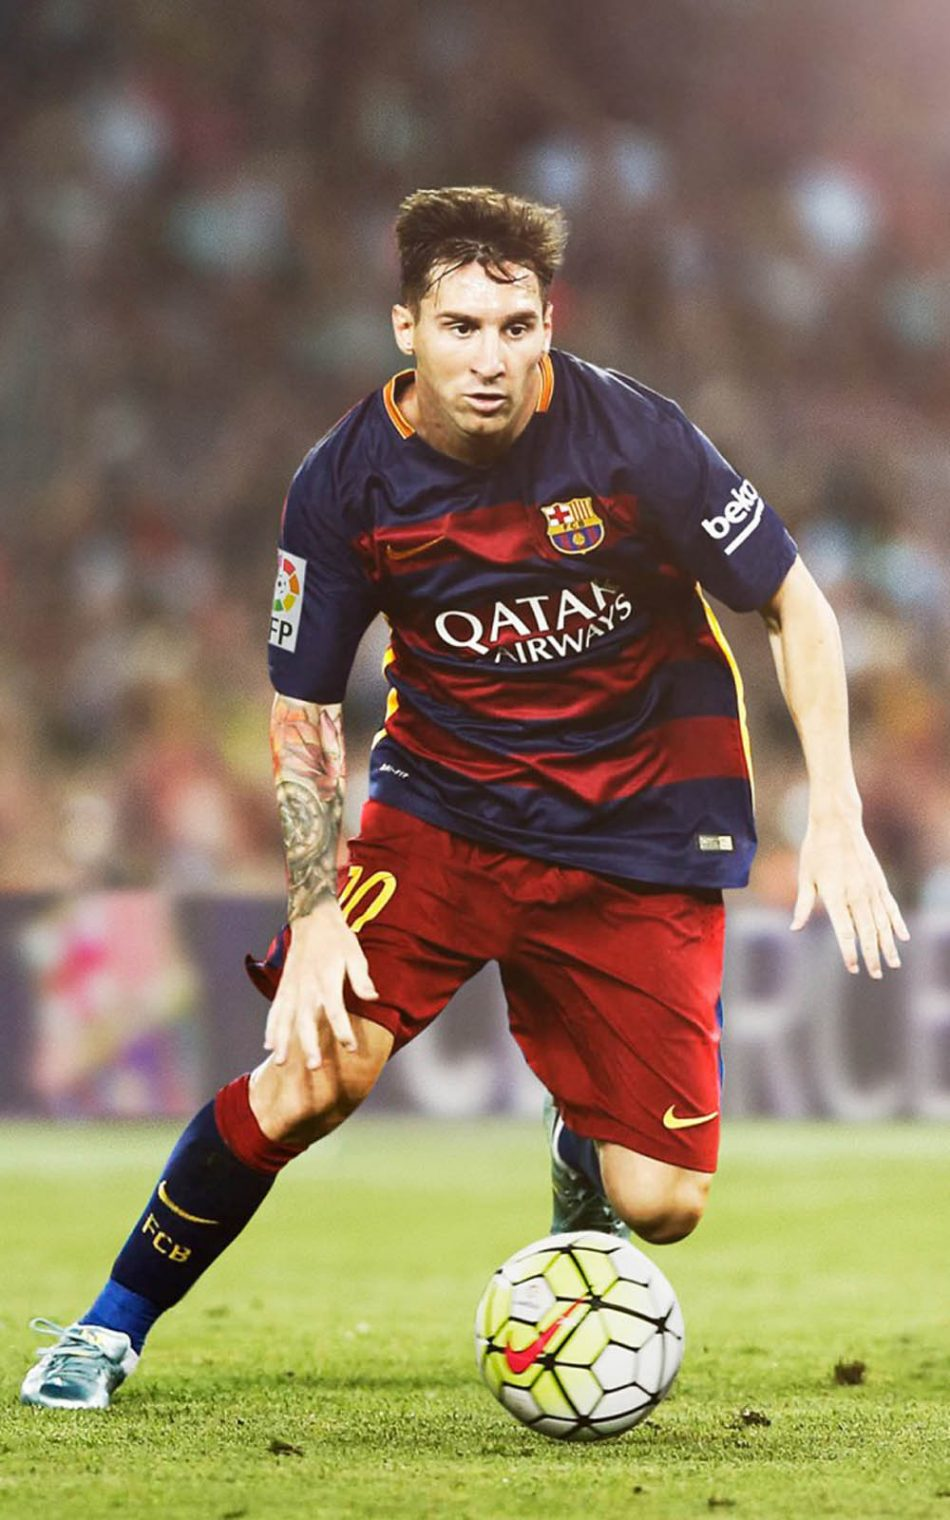 Lionel Messi Playing For Fc Barcelona Hd Mobile Wallpaper - Lionel Messi Mobile Wallpaper Hd , HD Wallpaper & Backgrounds